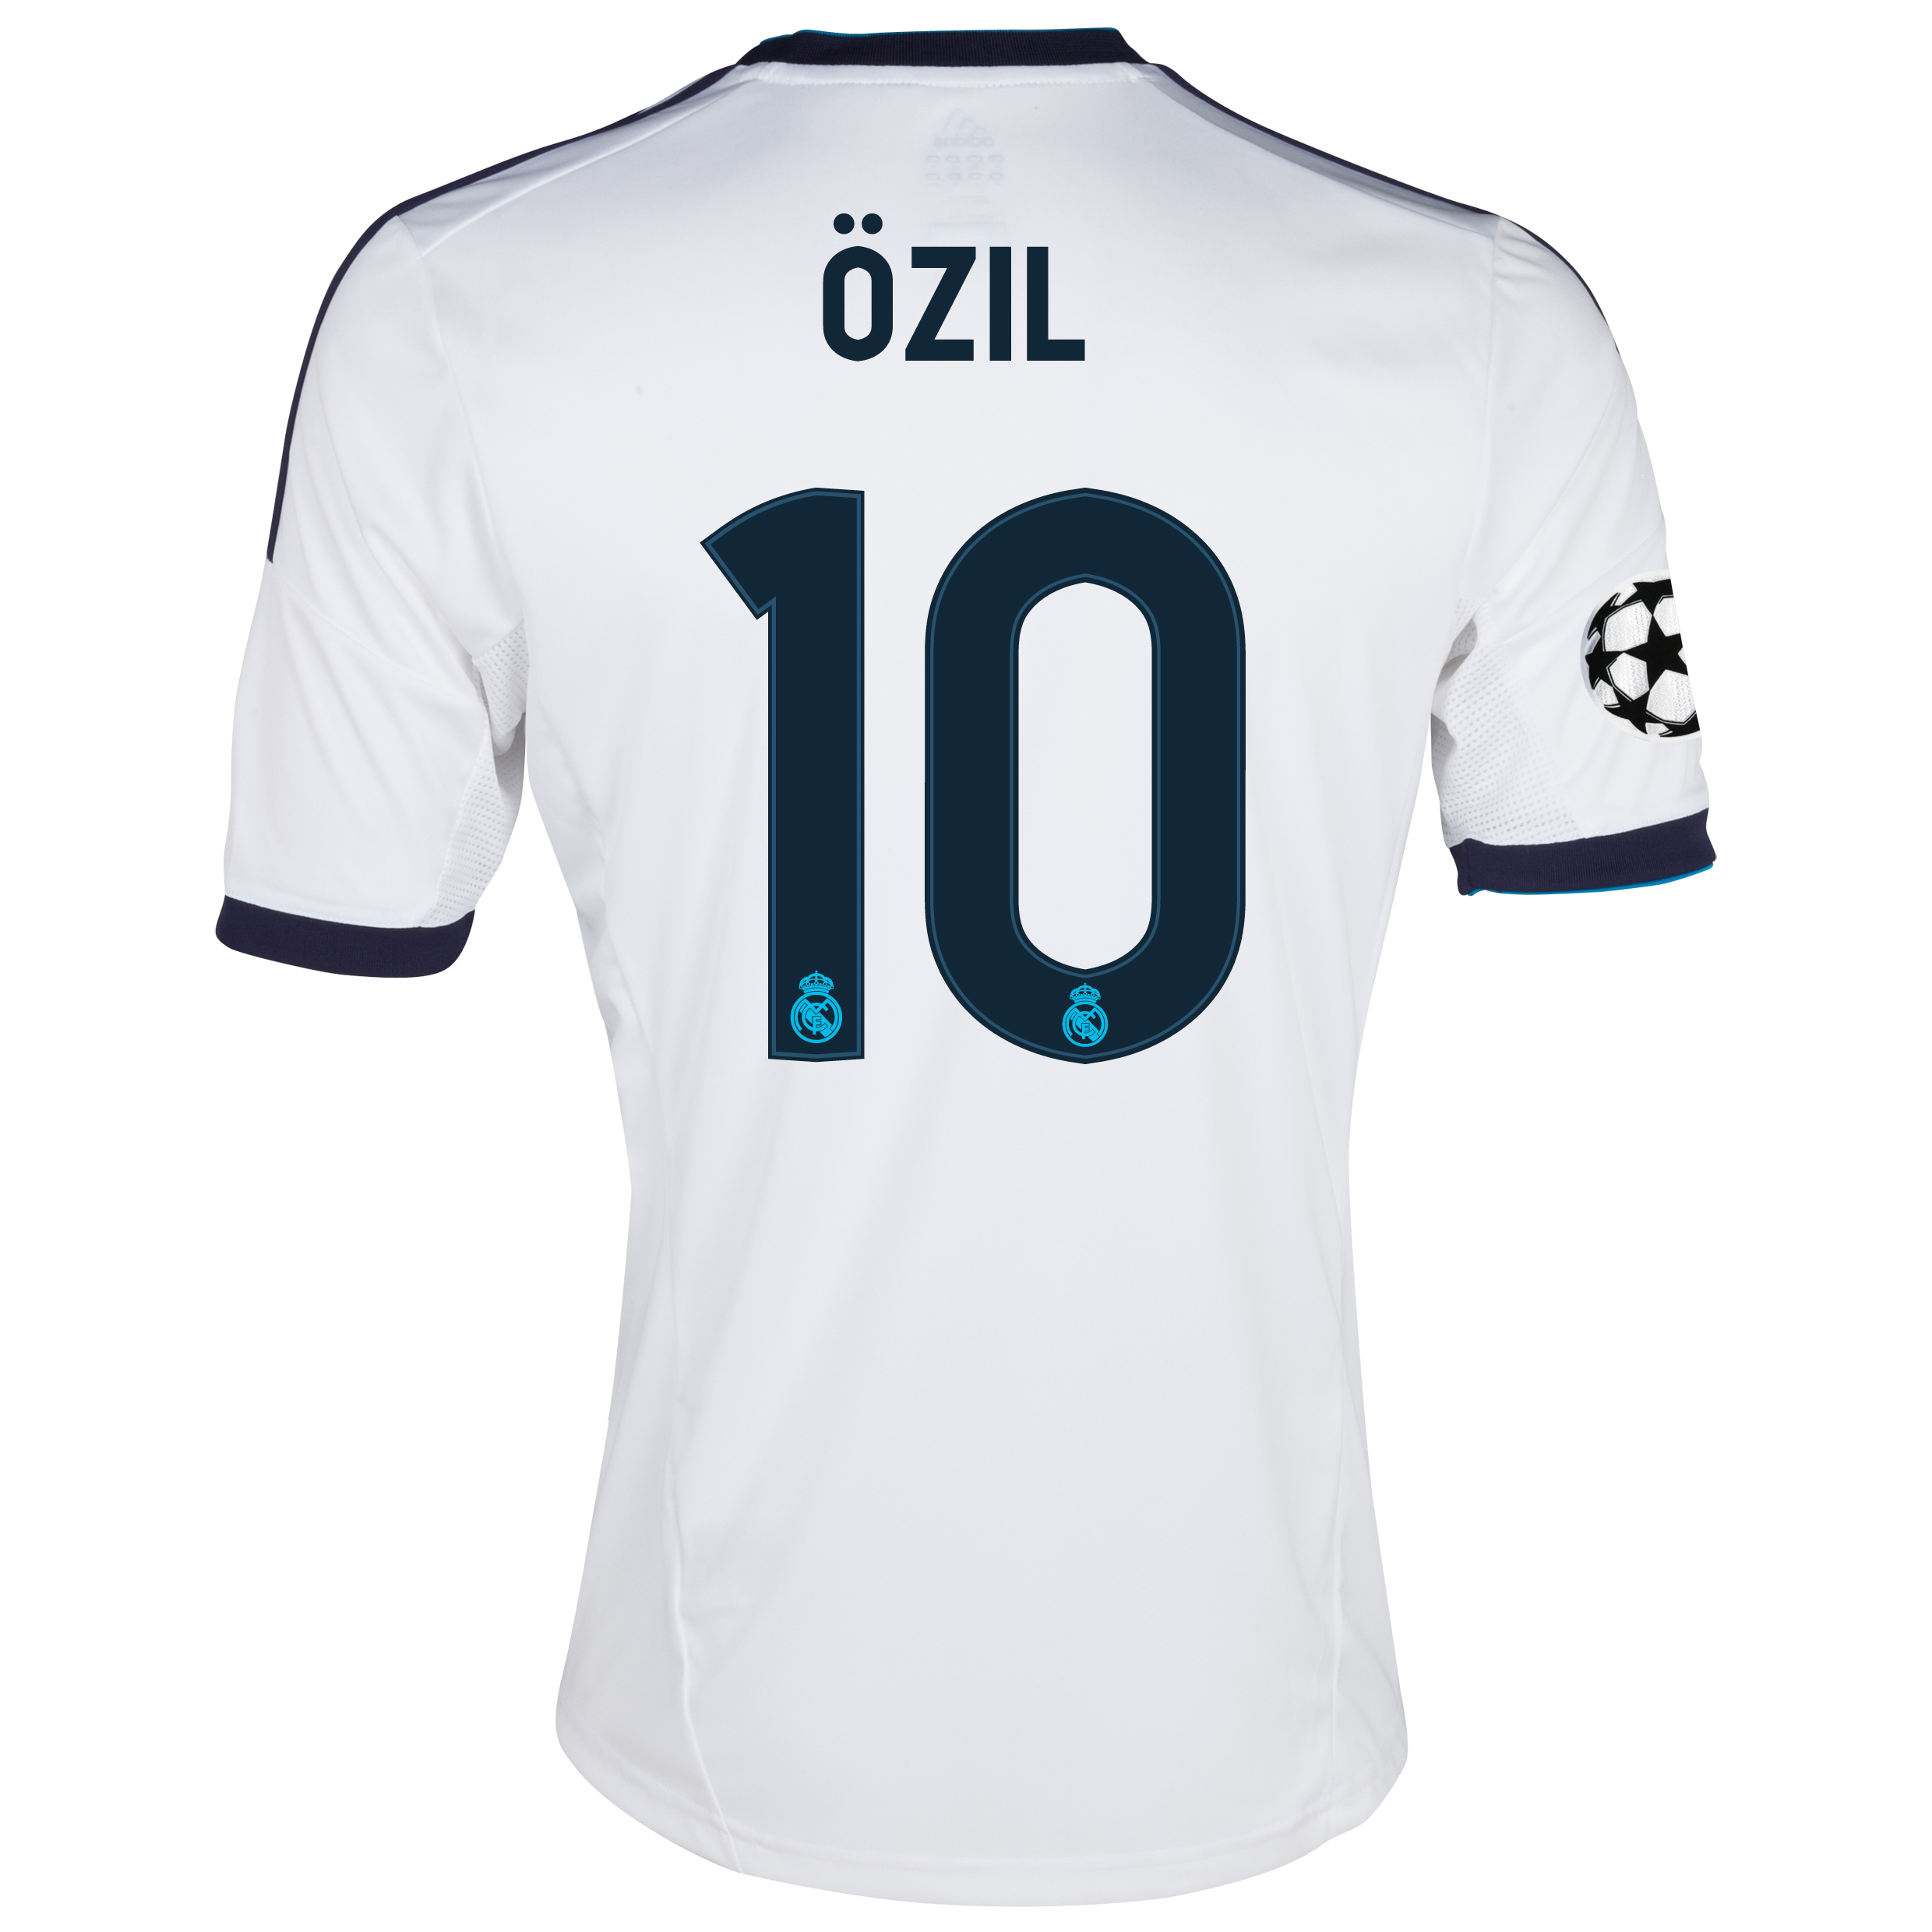 Real Madrid UEFA Champions League Home Shirt 2012/13 with Özil 10 printing